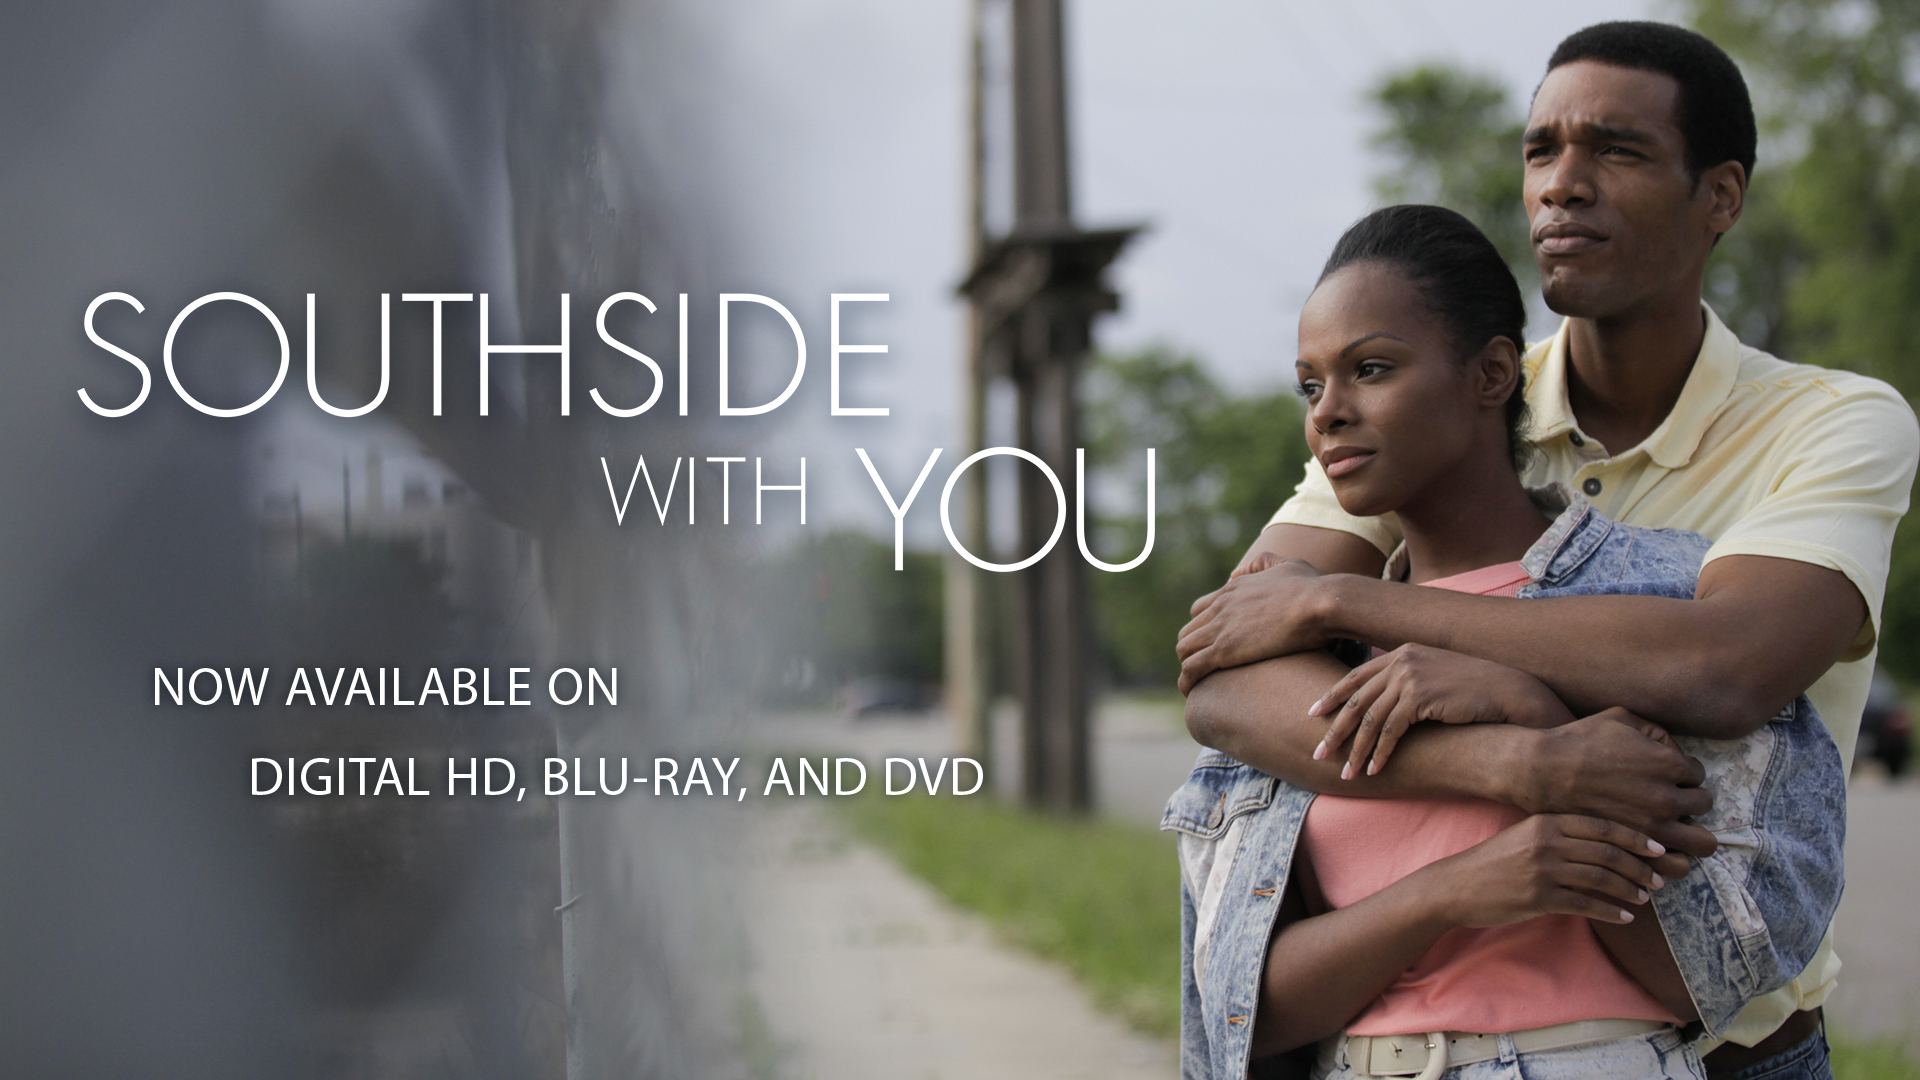 Southside With You - Home Entertainment Trailer (HD)